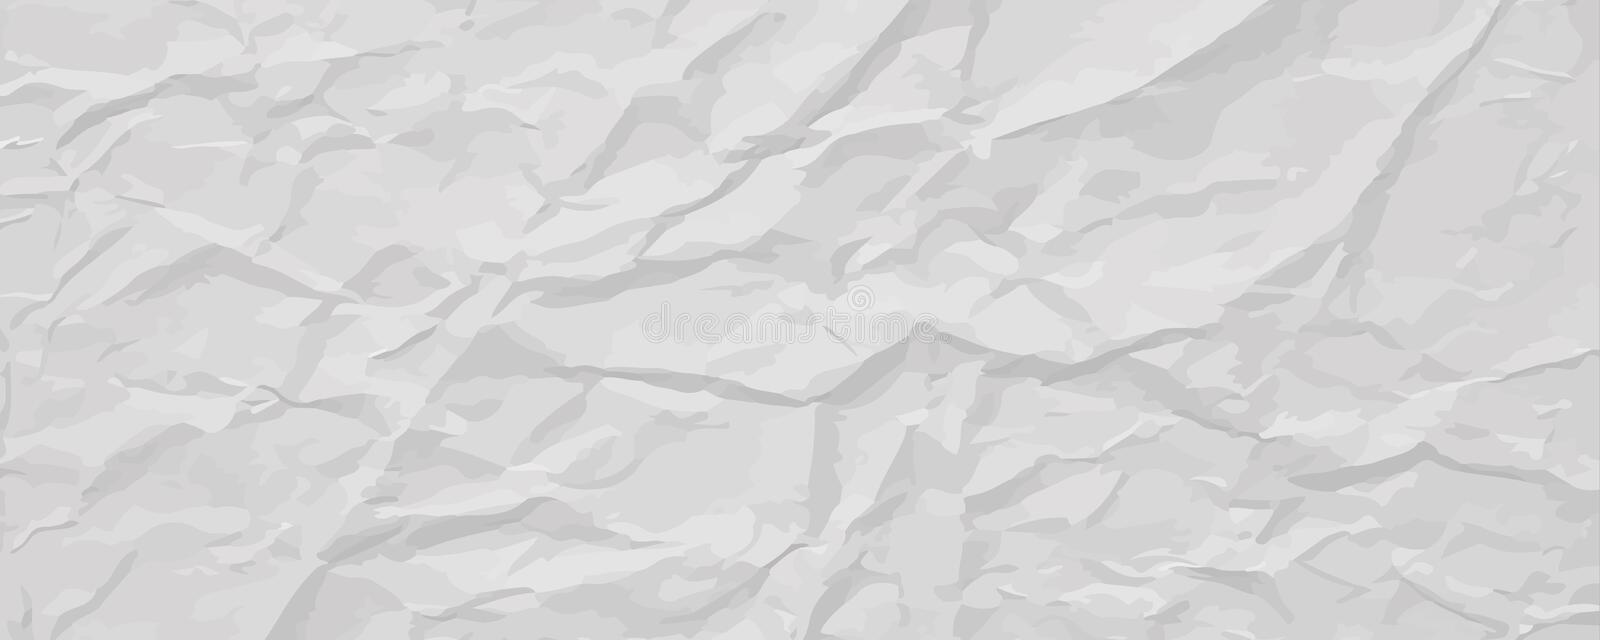 White wrinkled paper texture, abstract light background vector illustration